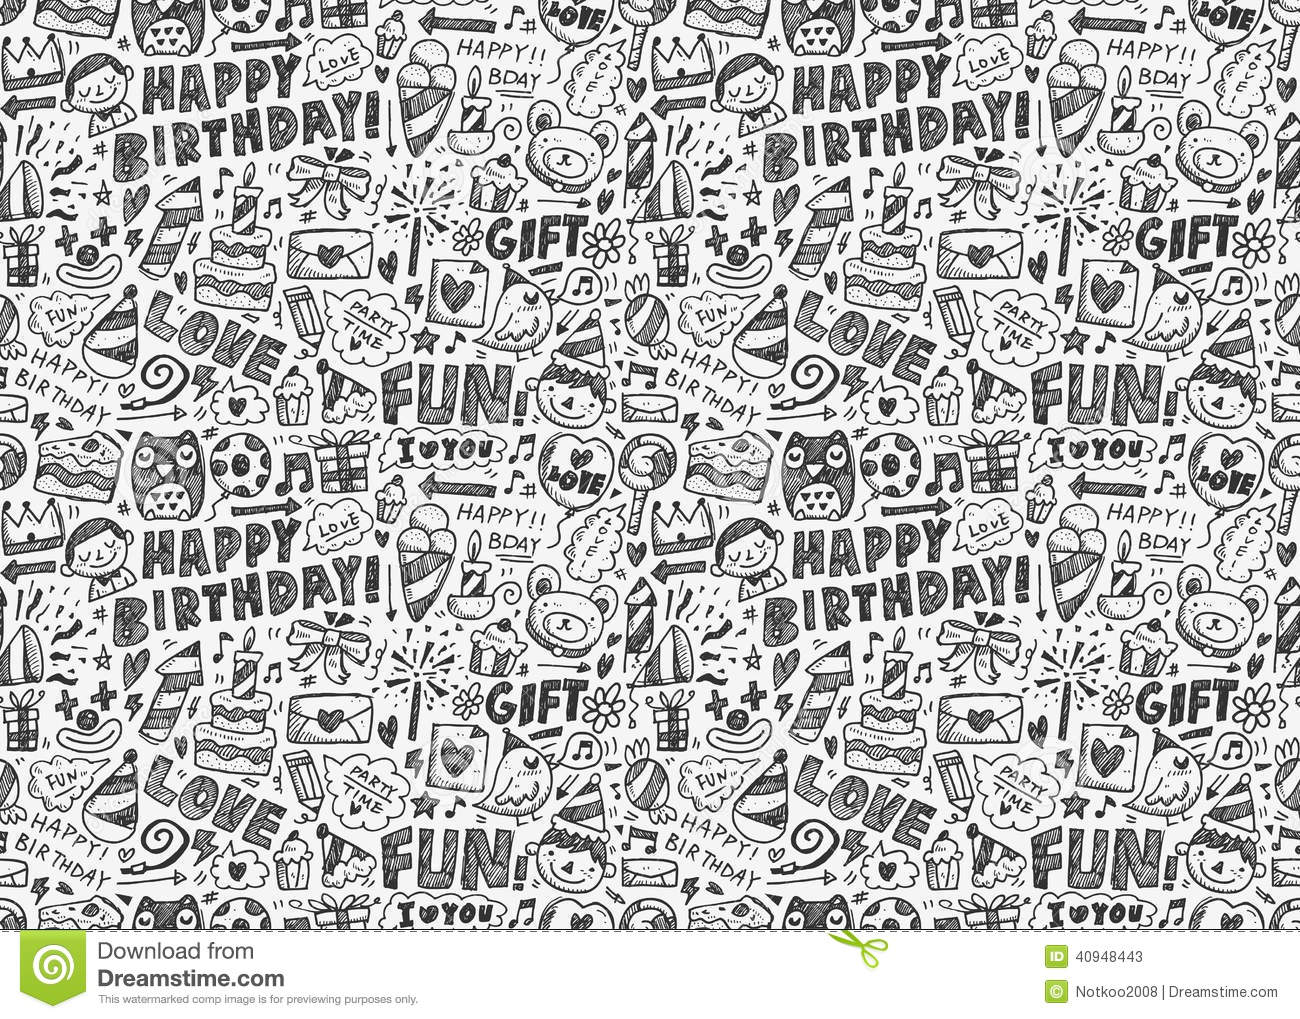 Candle Wallpaper Hd Seamless Doodle Birthday Party Pattern Background Stock